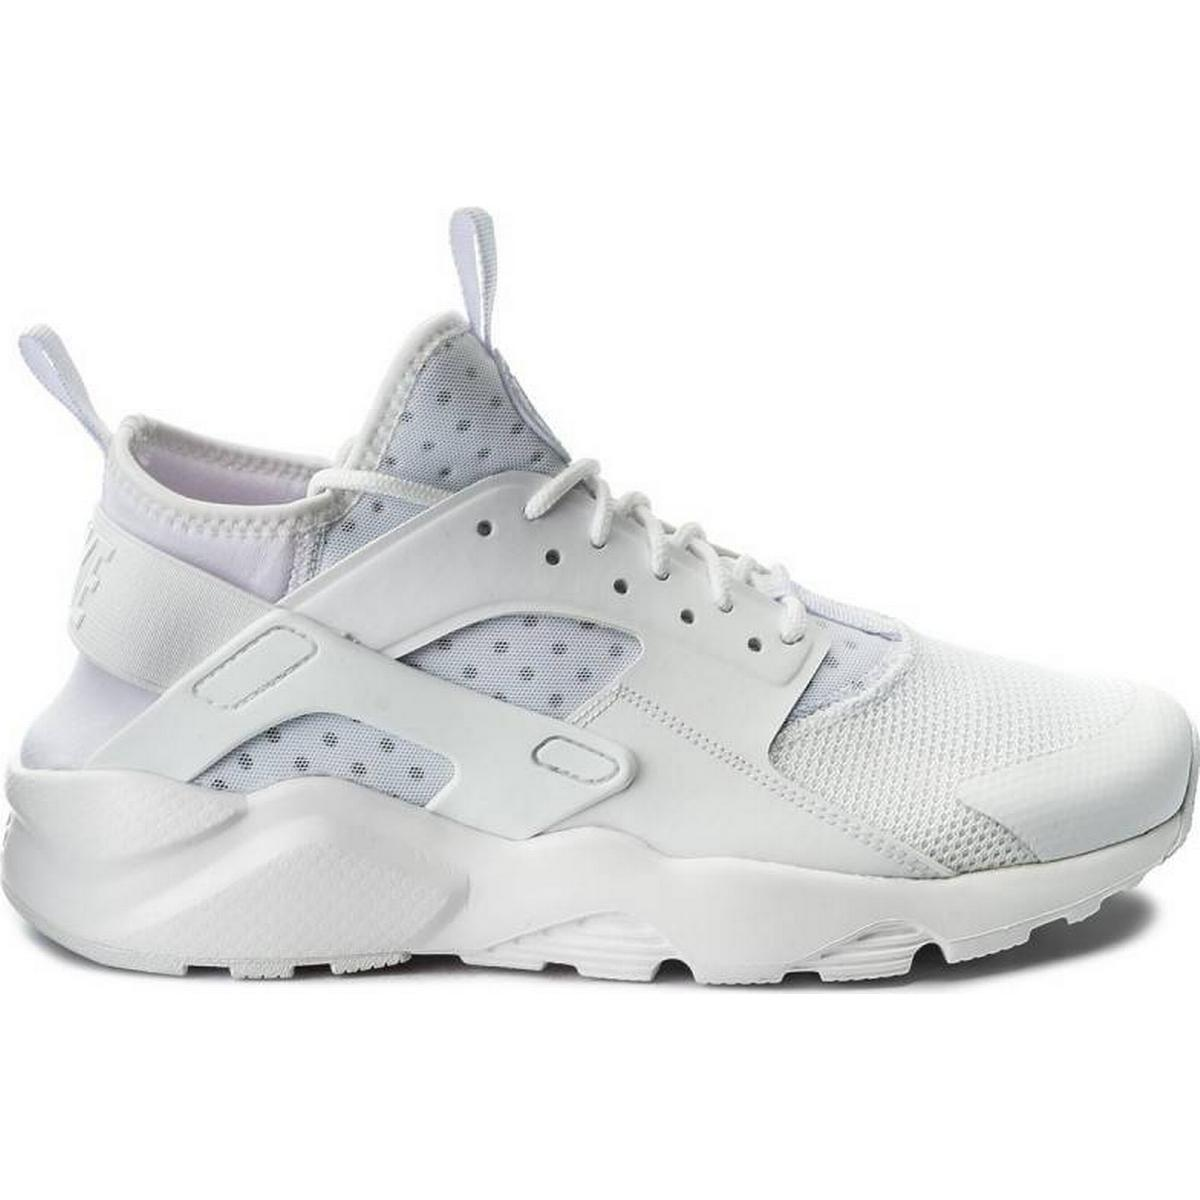 Nike air huarache run ultra • Find billigste pris hos